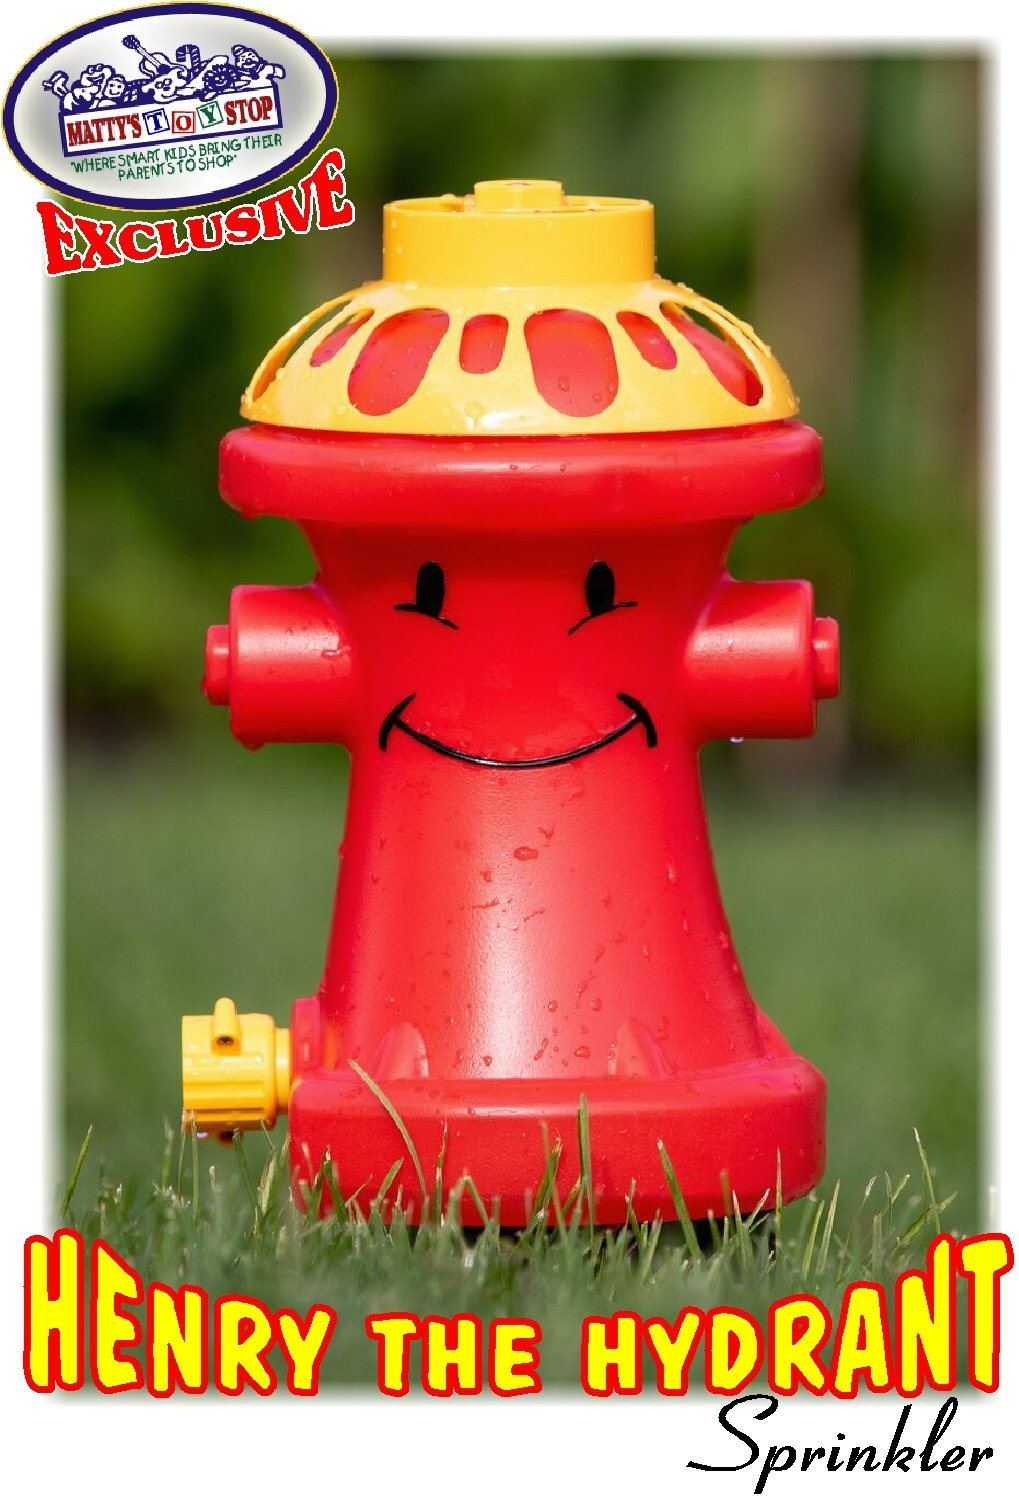 Matty's Toy Stop Henry The Hydrant Water Sprinkler for Kids, Attaches to Standard Garden Hose & Sprays Up to 10 Feet High & 16 Feet Wide, Measures 10.75'' High by Matty's Toy Stop